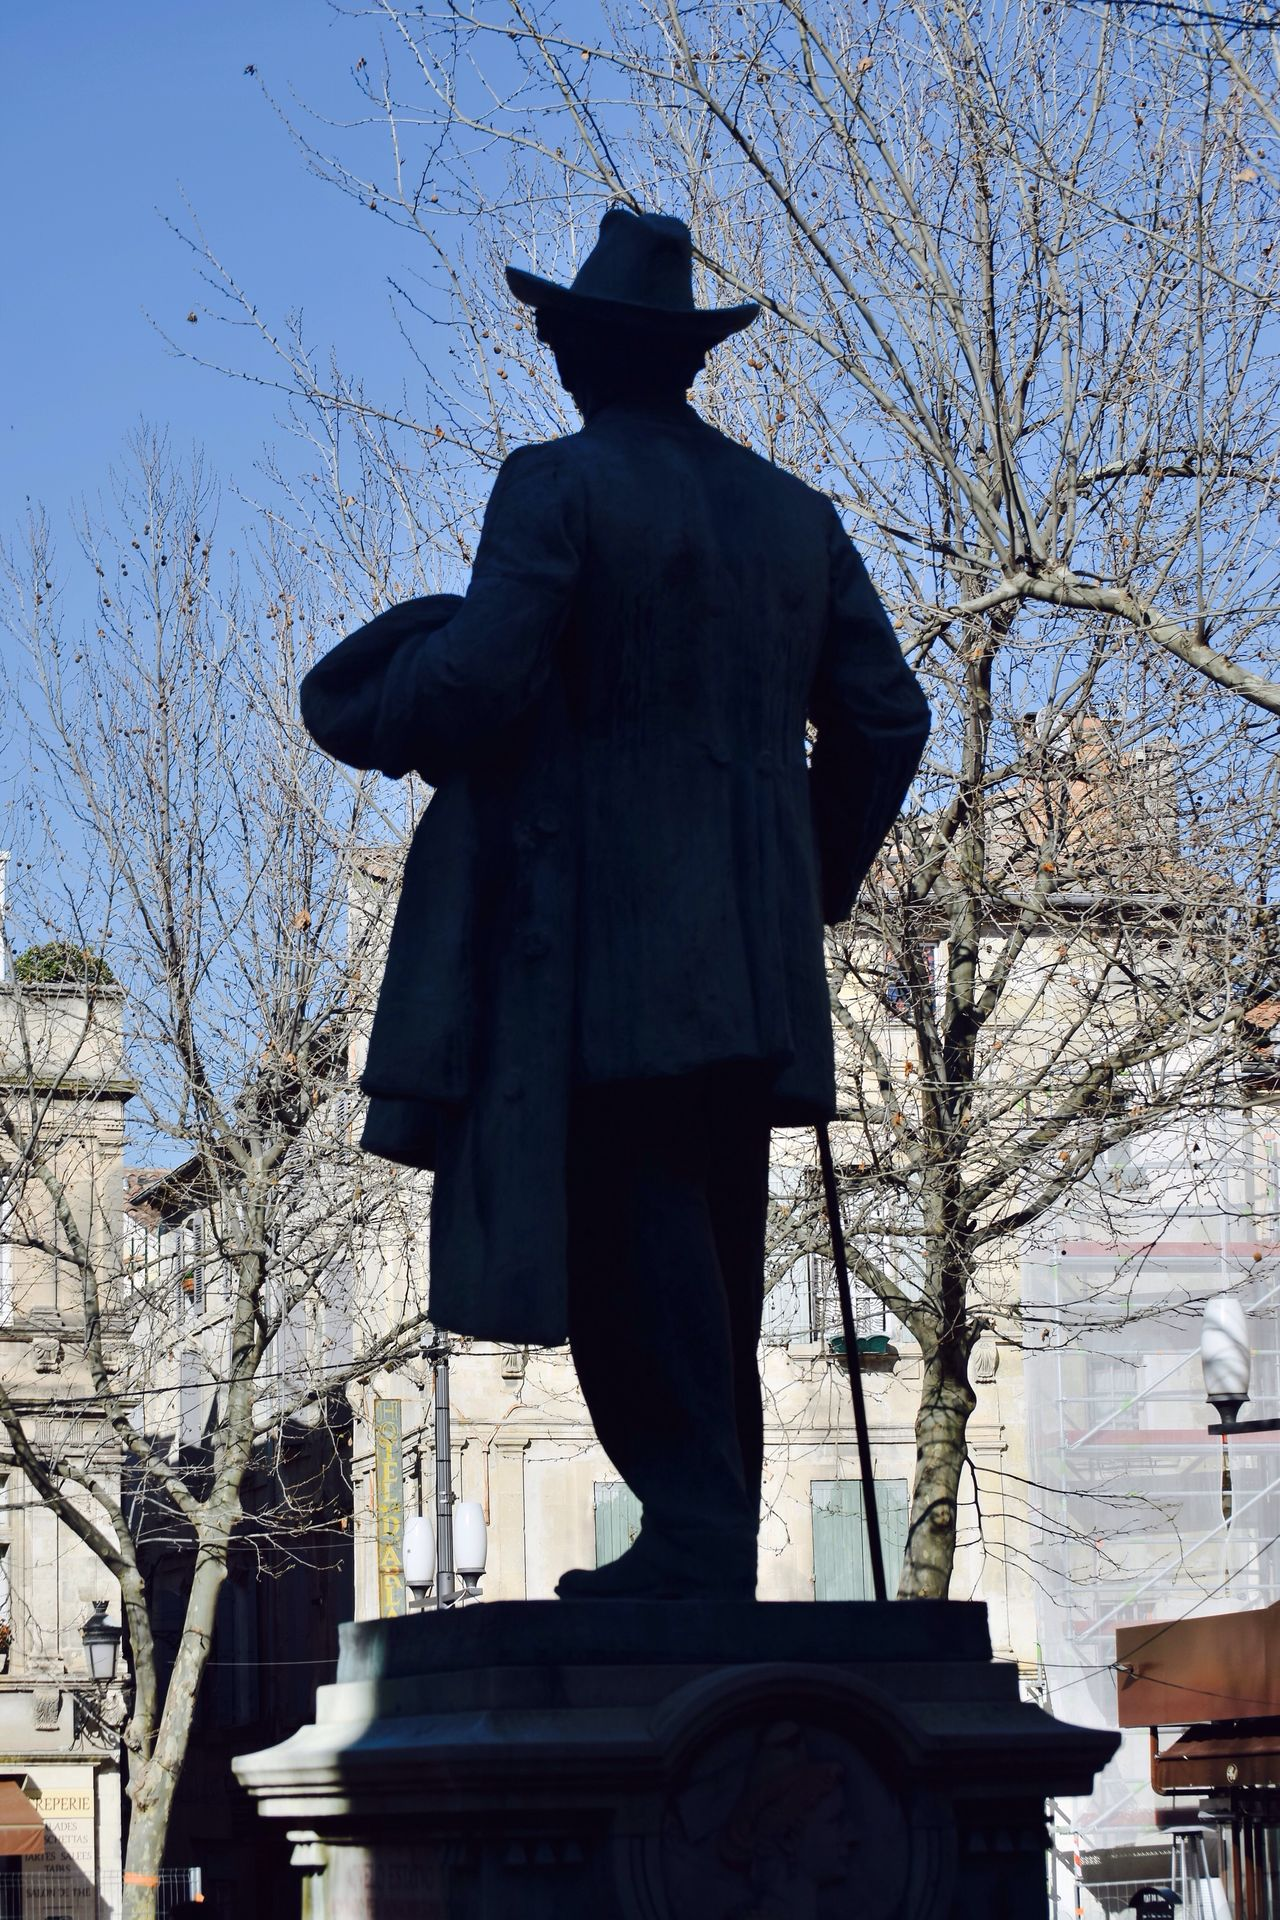 The statue Outdoors Arles Provence France 🇫🇷 IPhone Photography poet